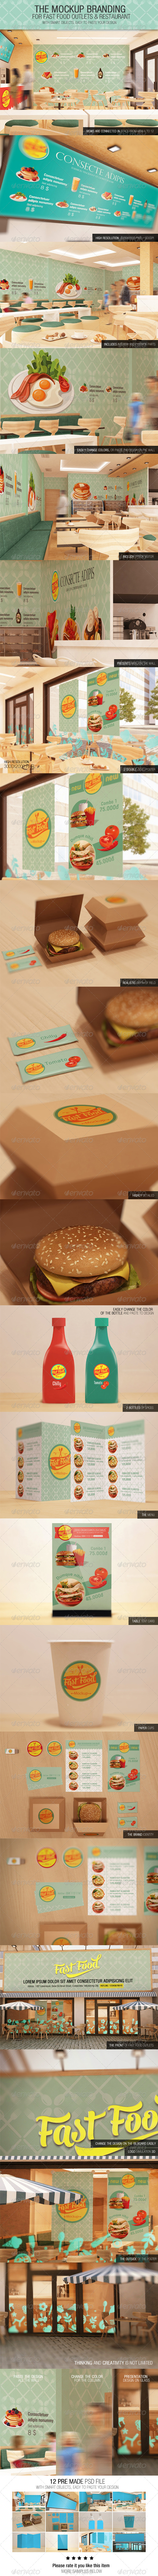 GraphicRiver The Mockup Branding For Fast Food Outlets 7408488